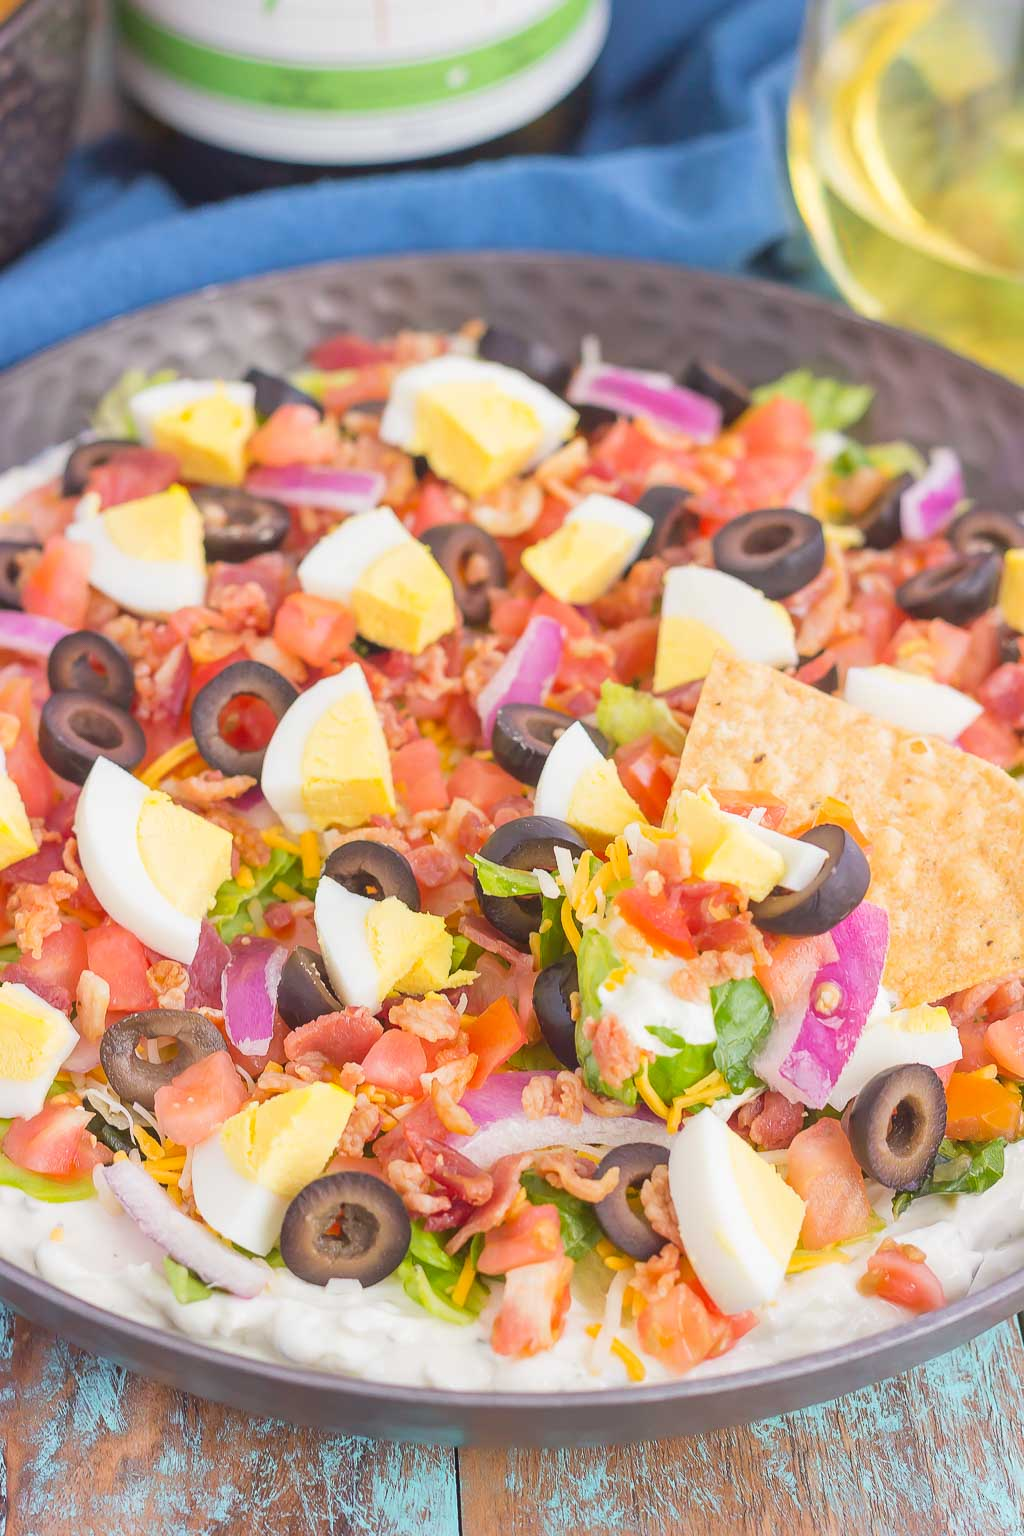 This Cobb Salad Dip is the perfect appetizer for parties, events, and get-togethers. A zesty ranch dip is loaded with the classic flavors of a Cobb salad and is sure to impress even the pickiest of eaters!